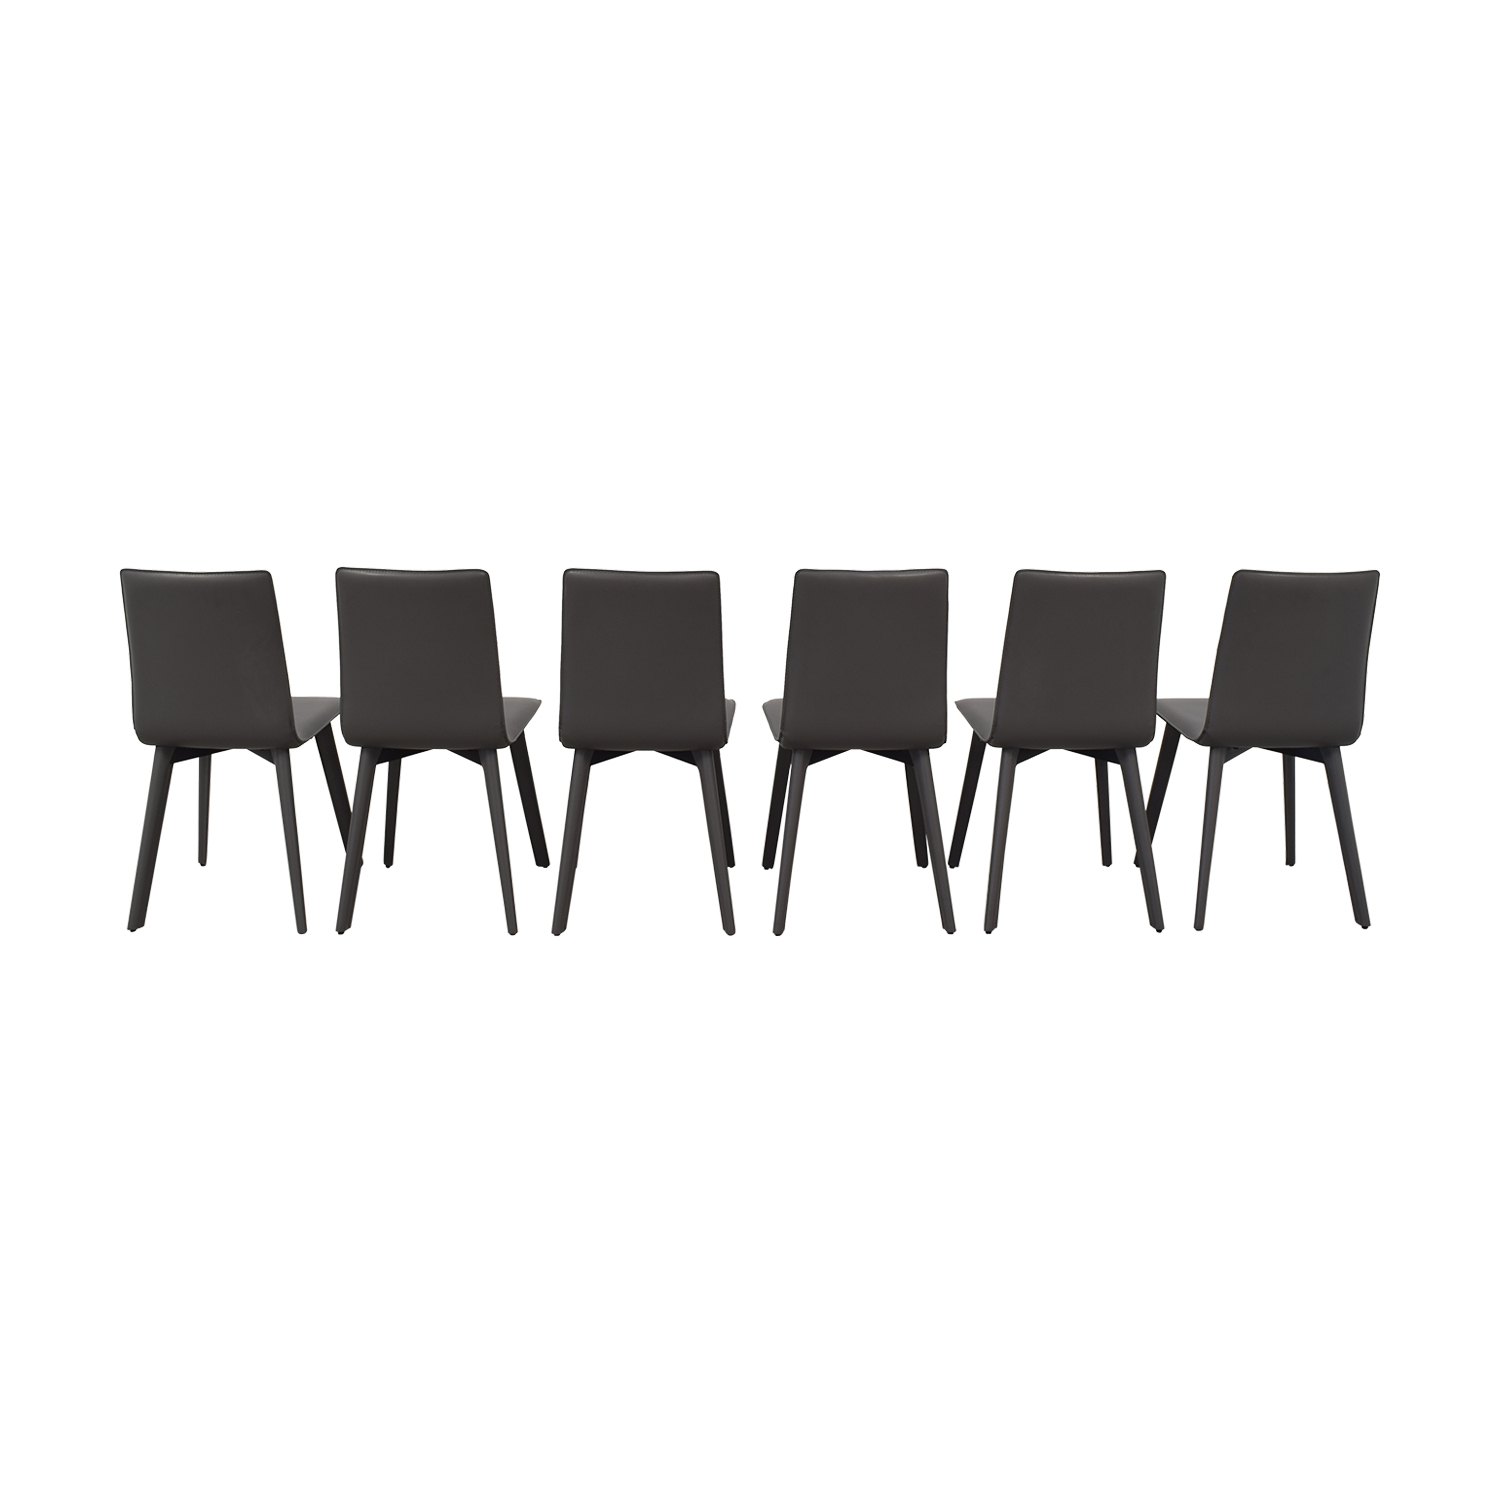 shop Room & Board Room & Board Hirsch Dining Chairs online